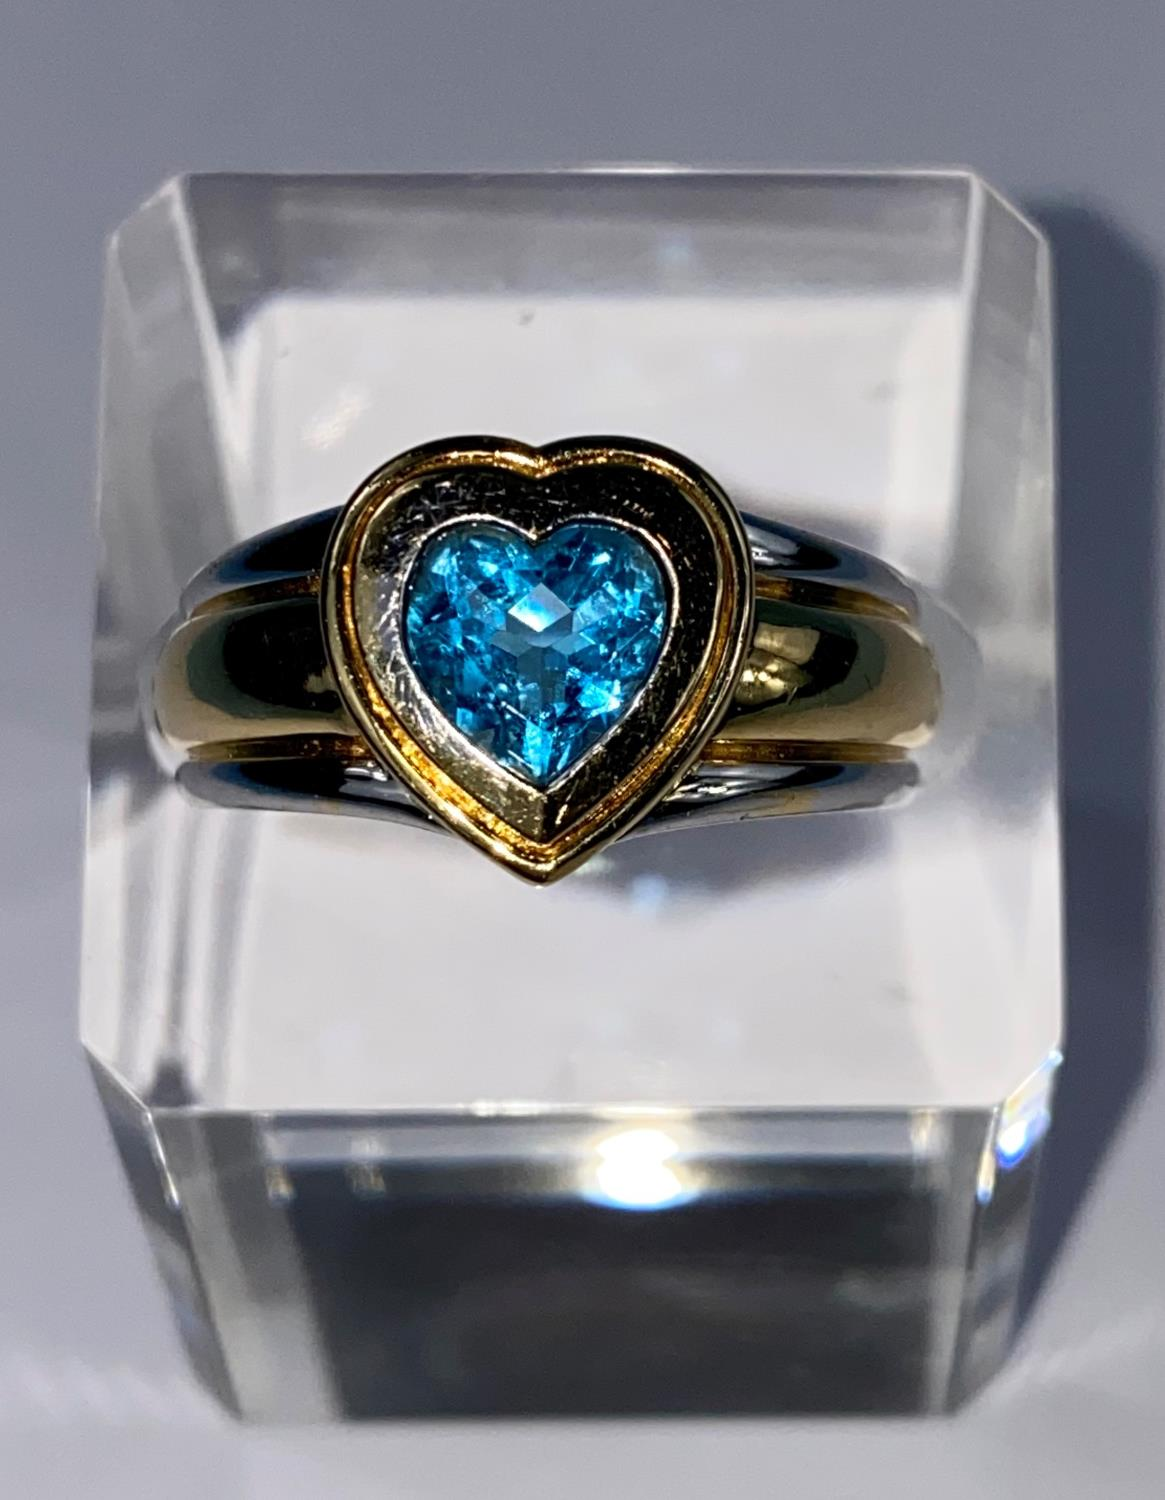 A lady's 18ct hallmarked two tone gold dress ring on a broad shank and blue stone in heart